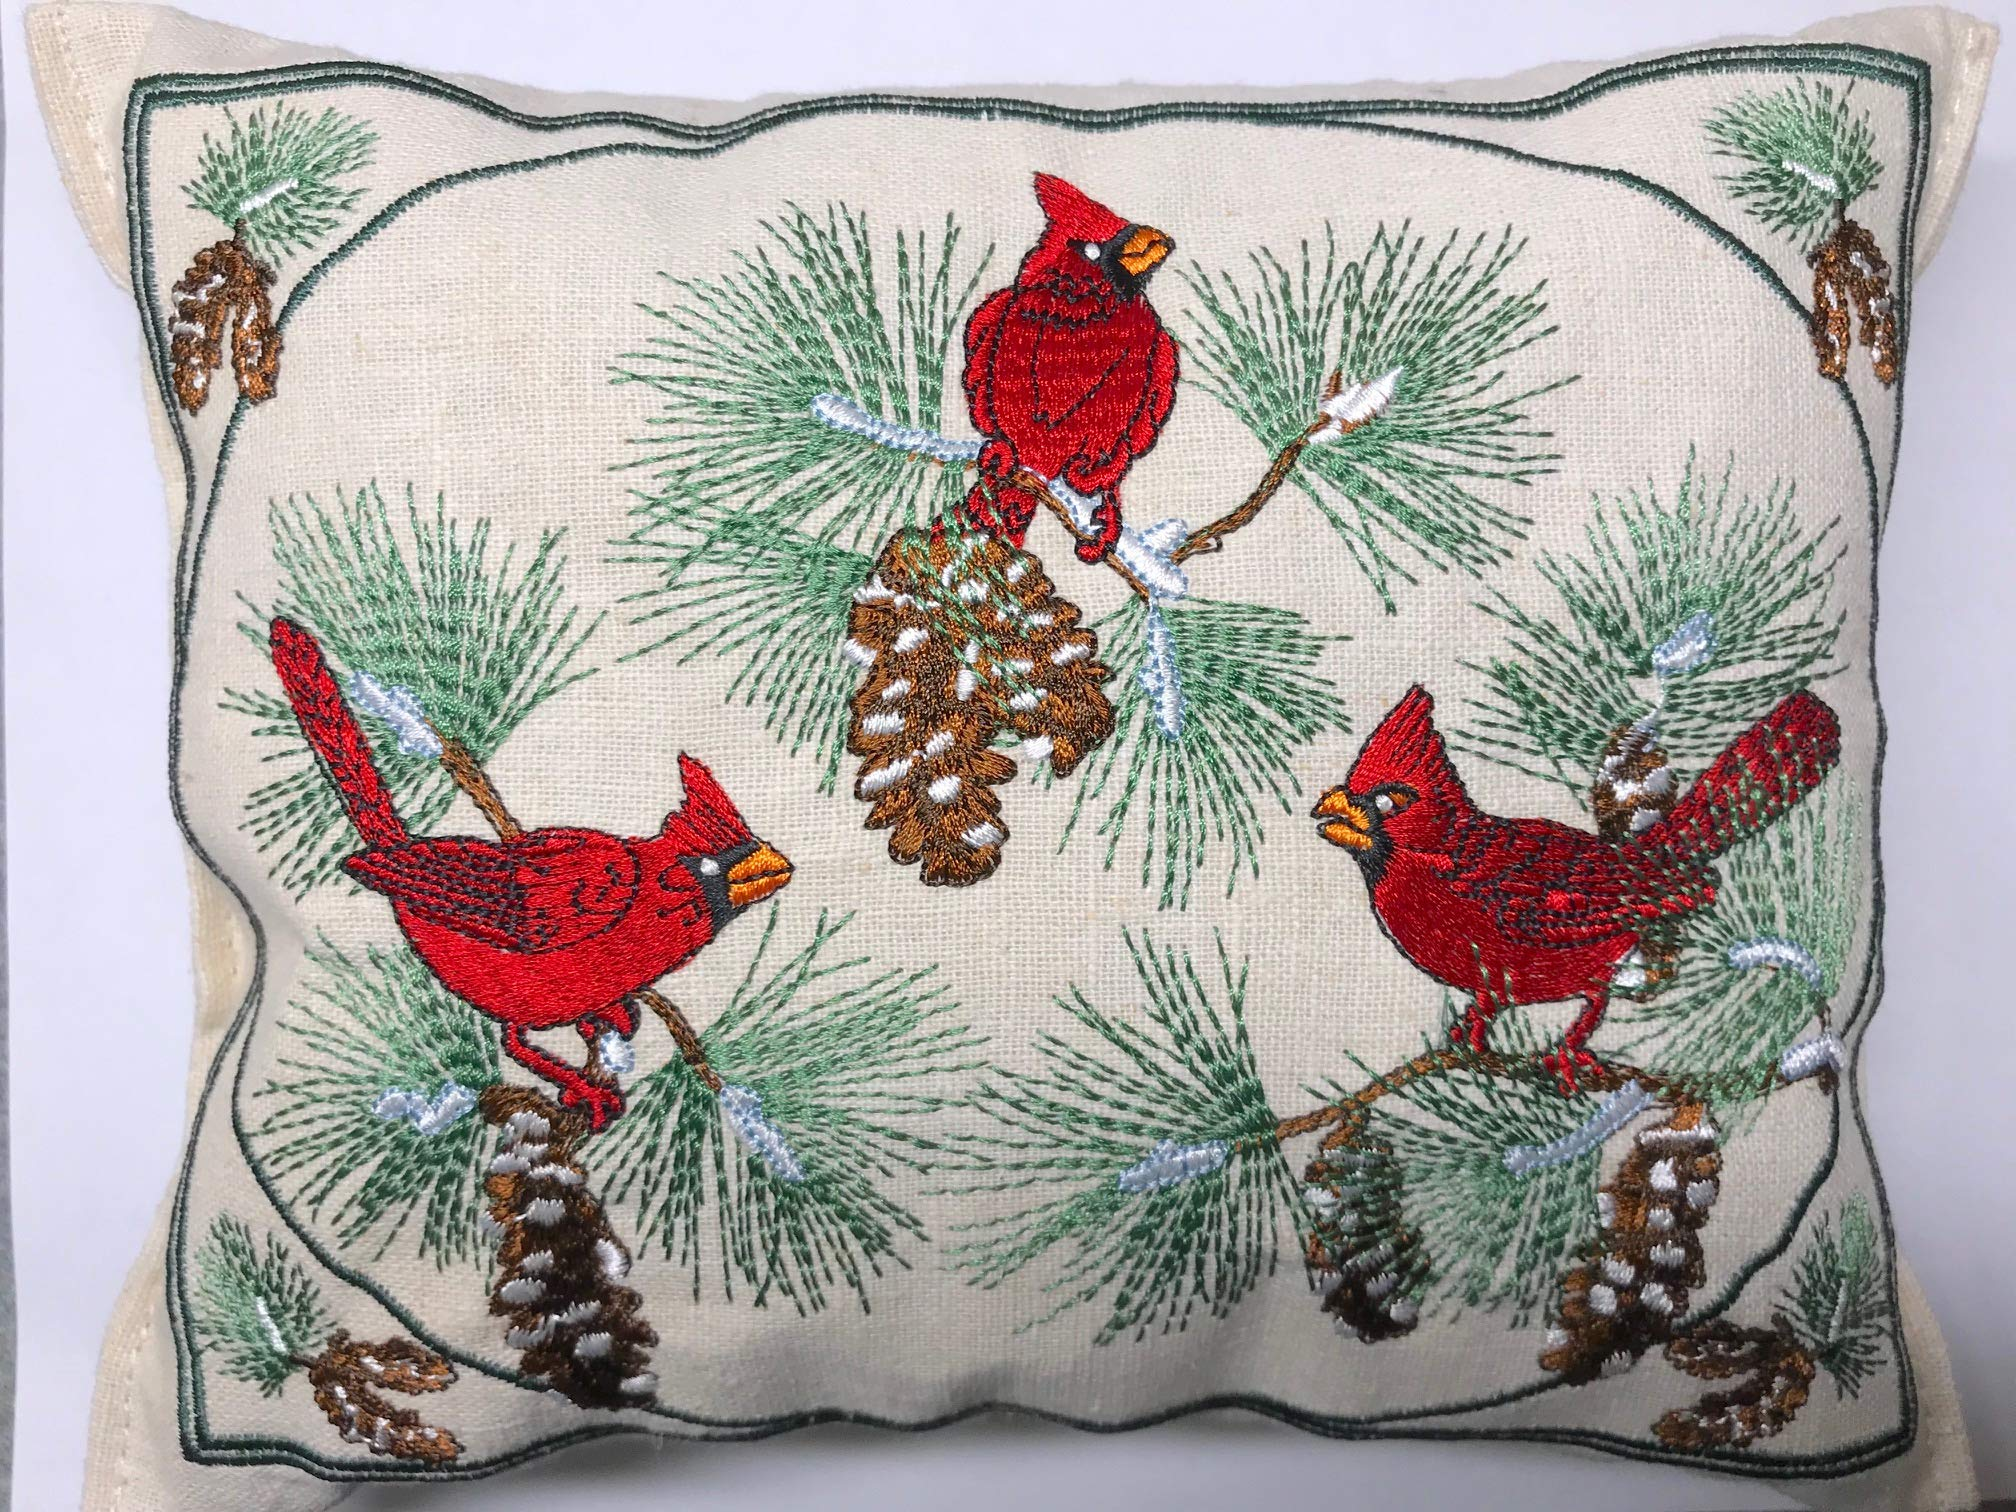 Paine's Balsam Fir Pillow 6''x9'' Embroidered Sampler Cardinals Pine Cones Birds by Paine's